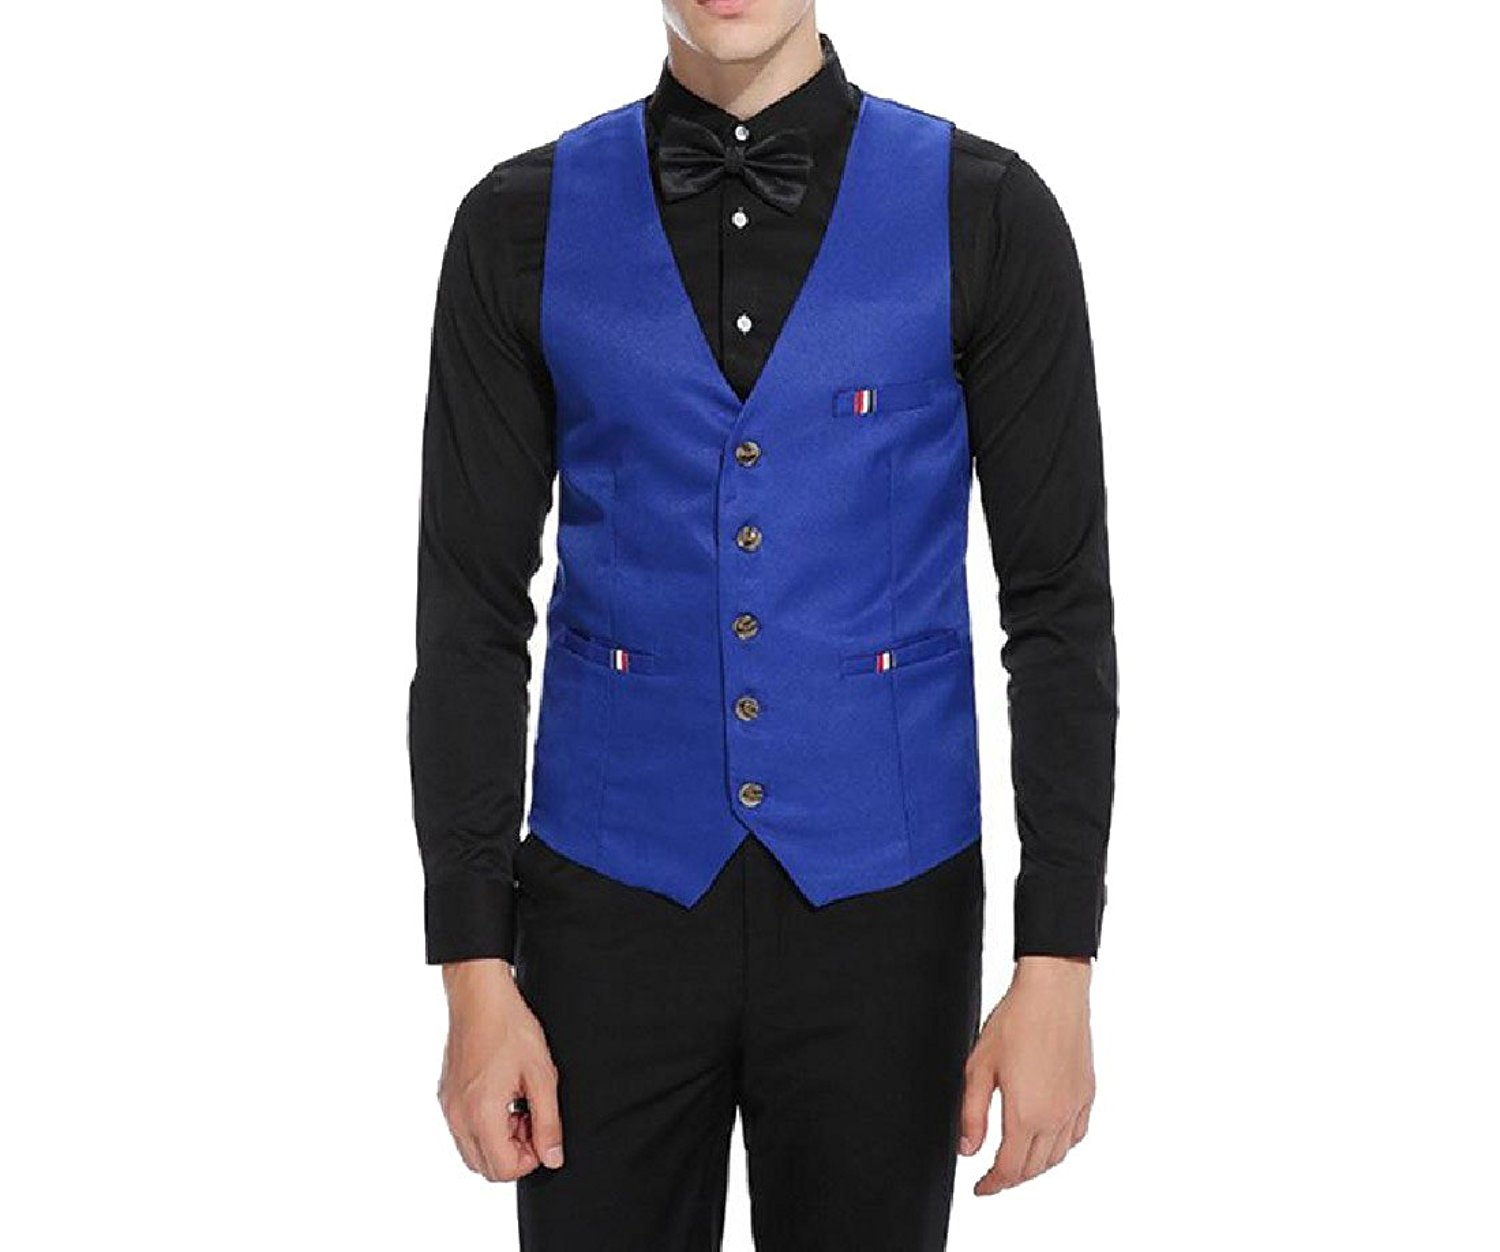 Abetteric Mens Solid Business Stitching Striped Pocketed Waistcoat Vest Suit